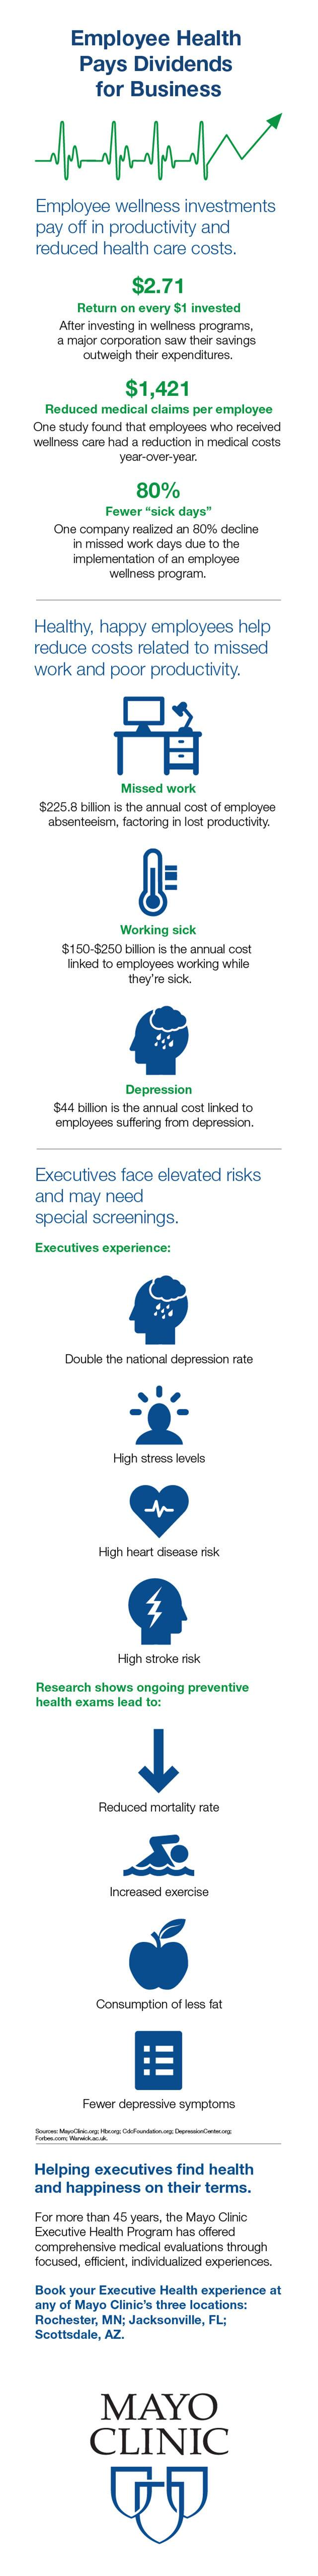 Infographic for Employee Health Benefits